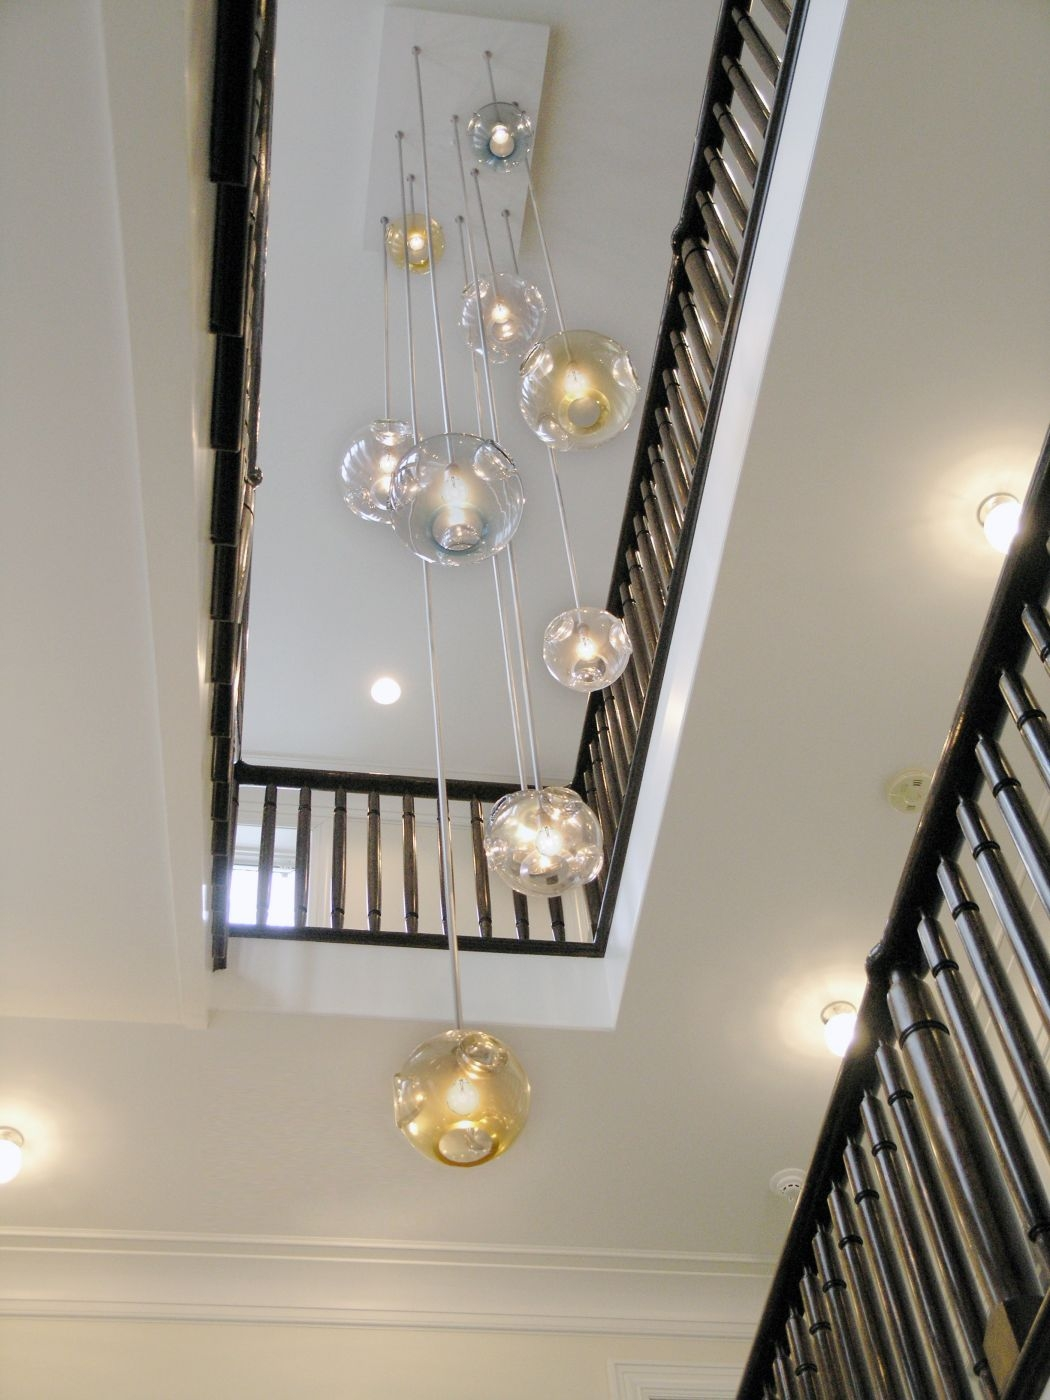 Jgooddesign Aqua Chandelier For Stairwell Chandelier (Image 8 of 15)